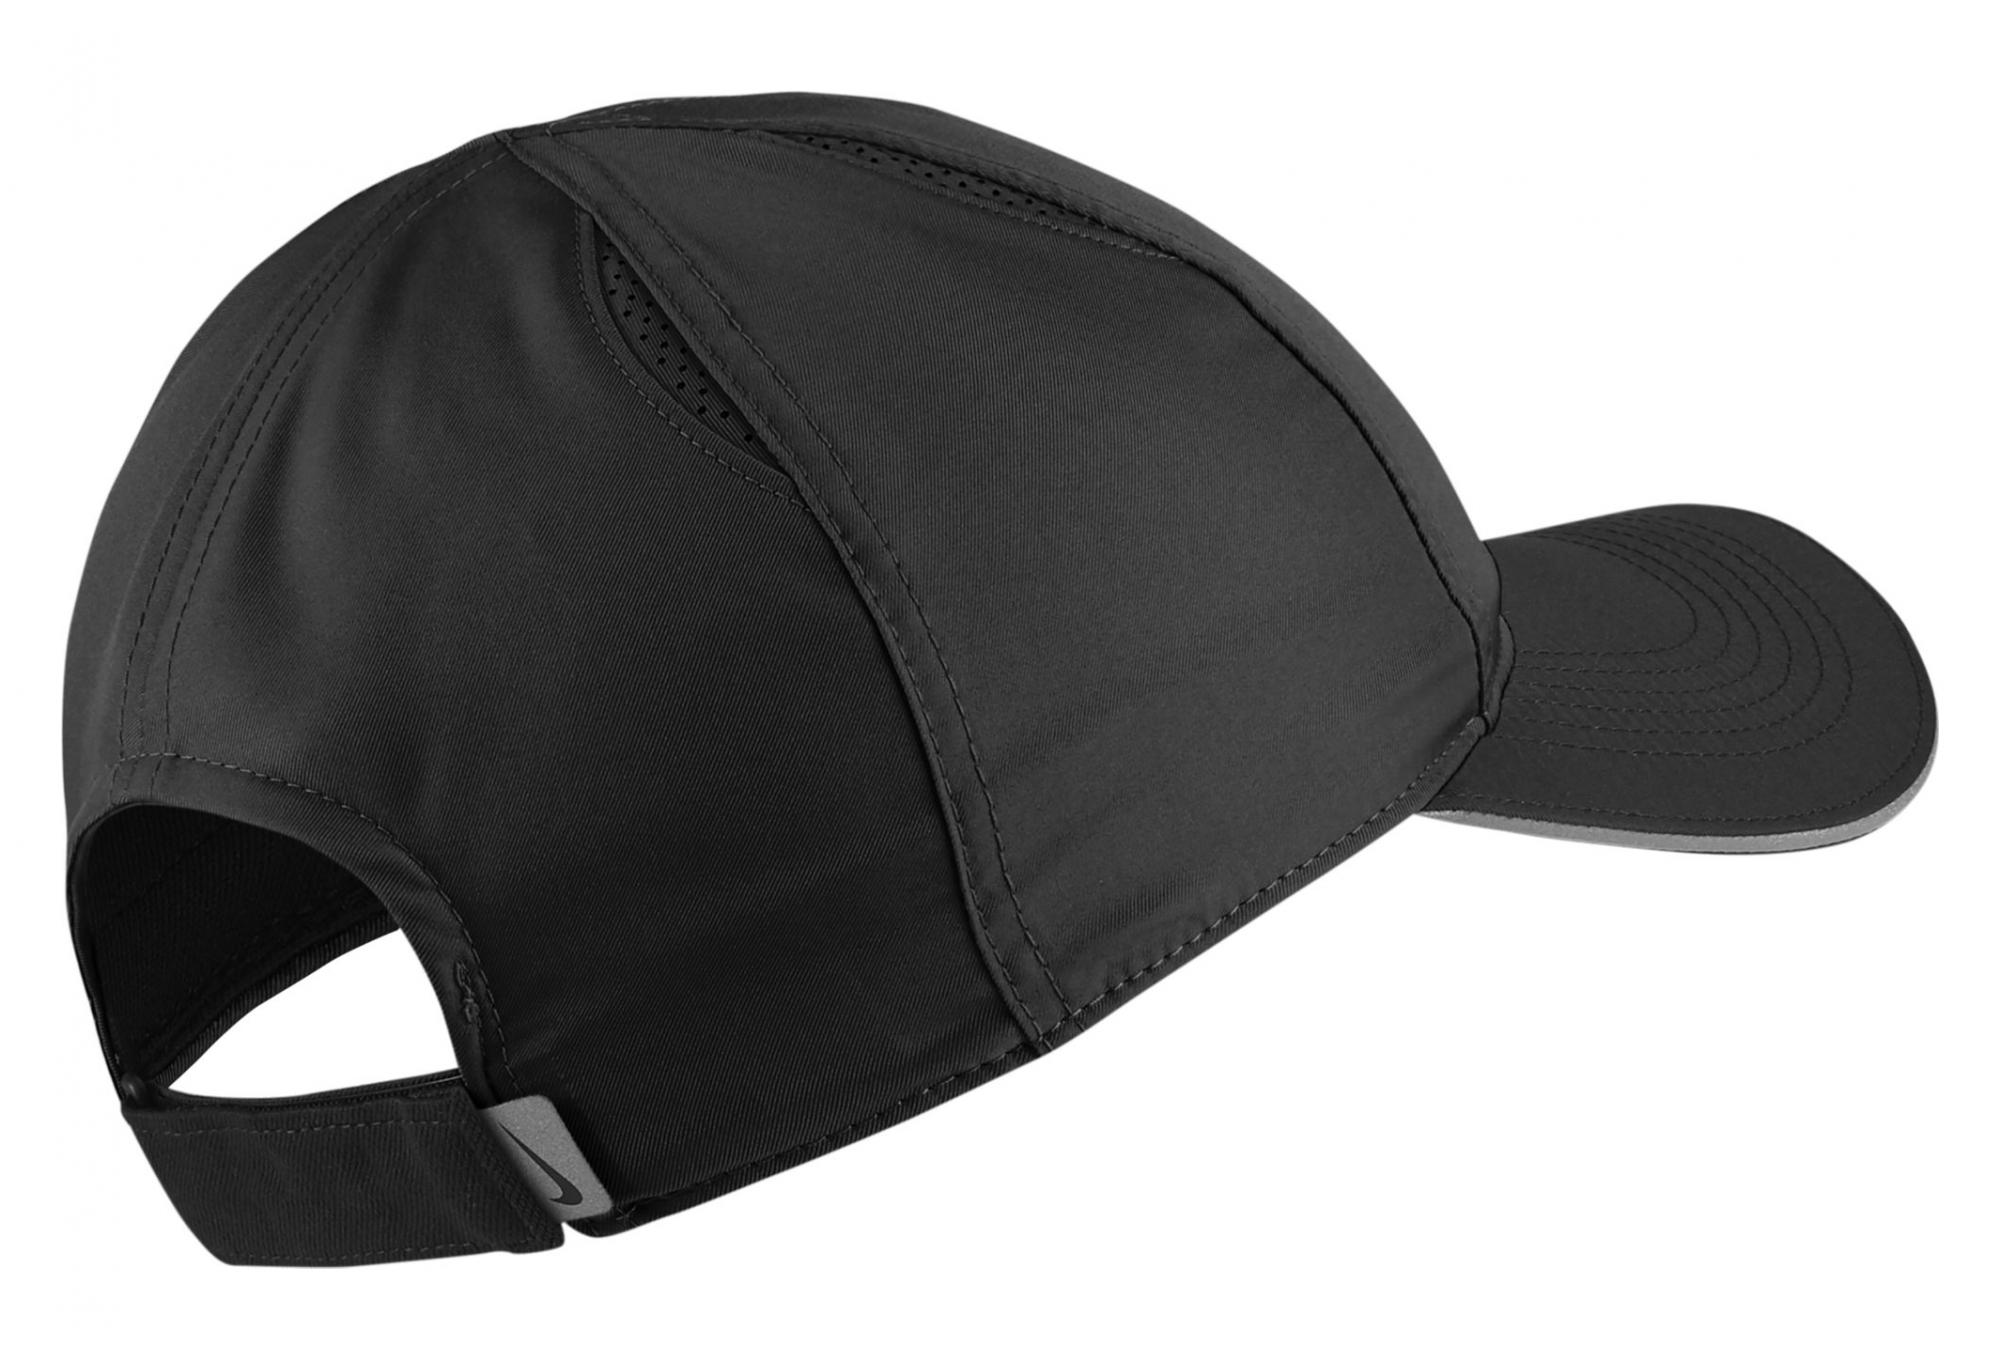 525783c5f6 NIKE Featherlight Cap Black Unisex